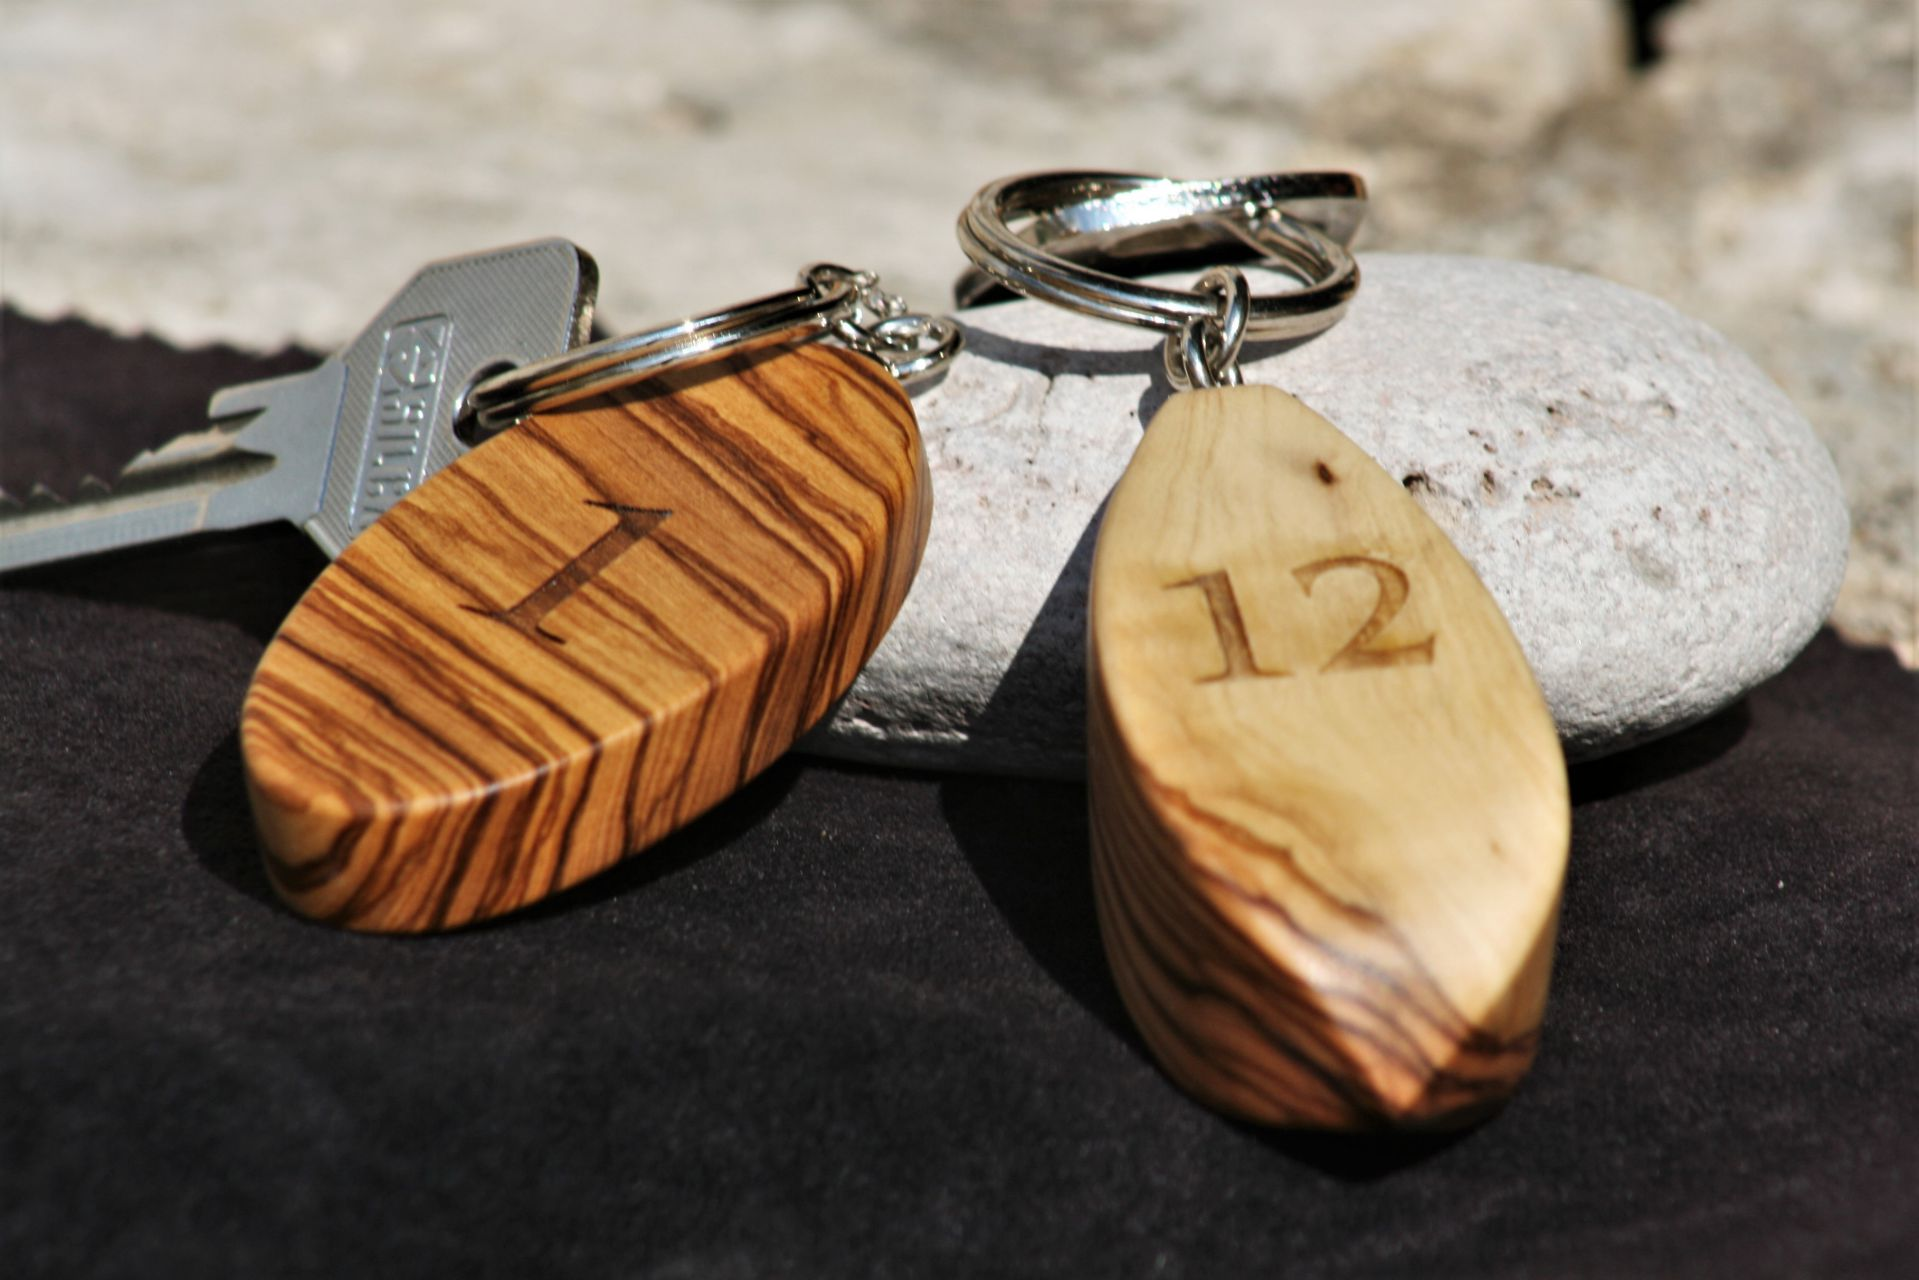 wooden home details olive wood key ring size S & M engraved